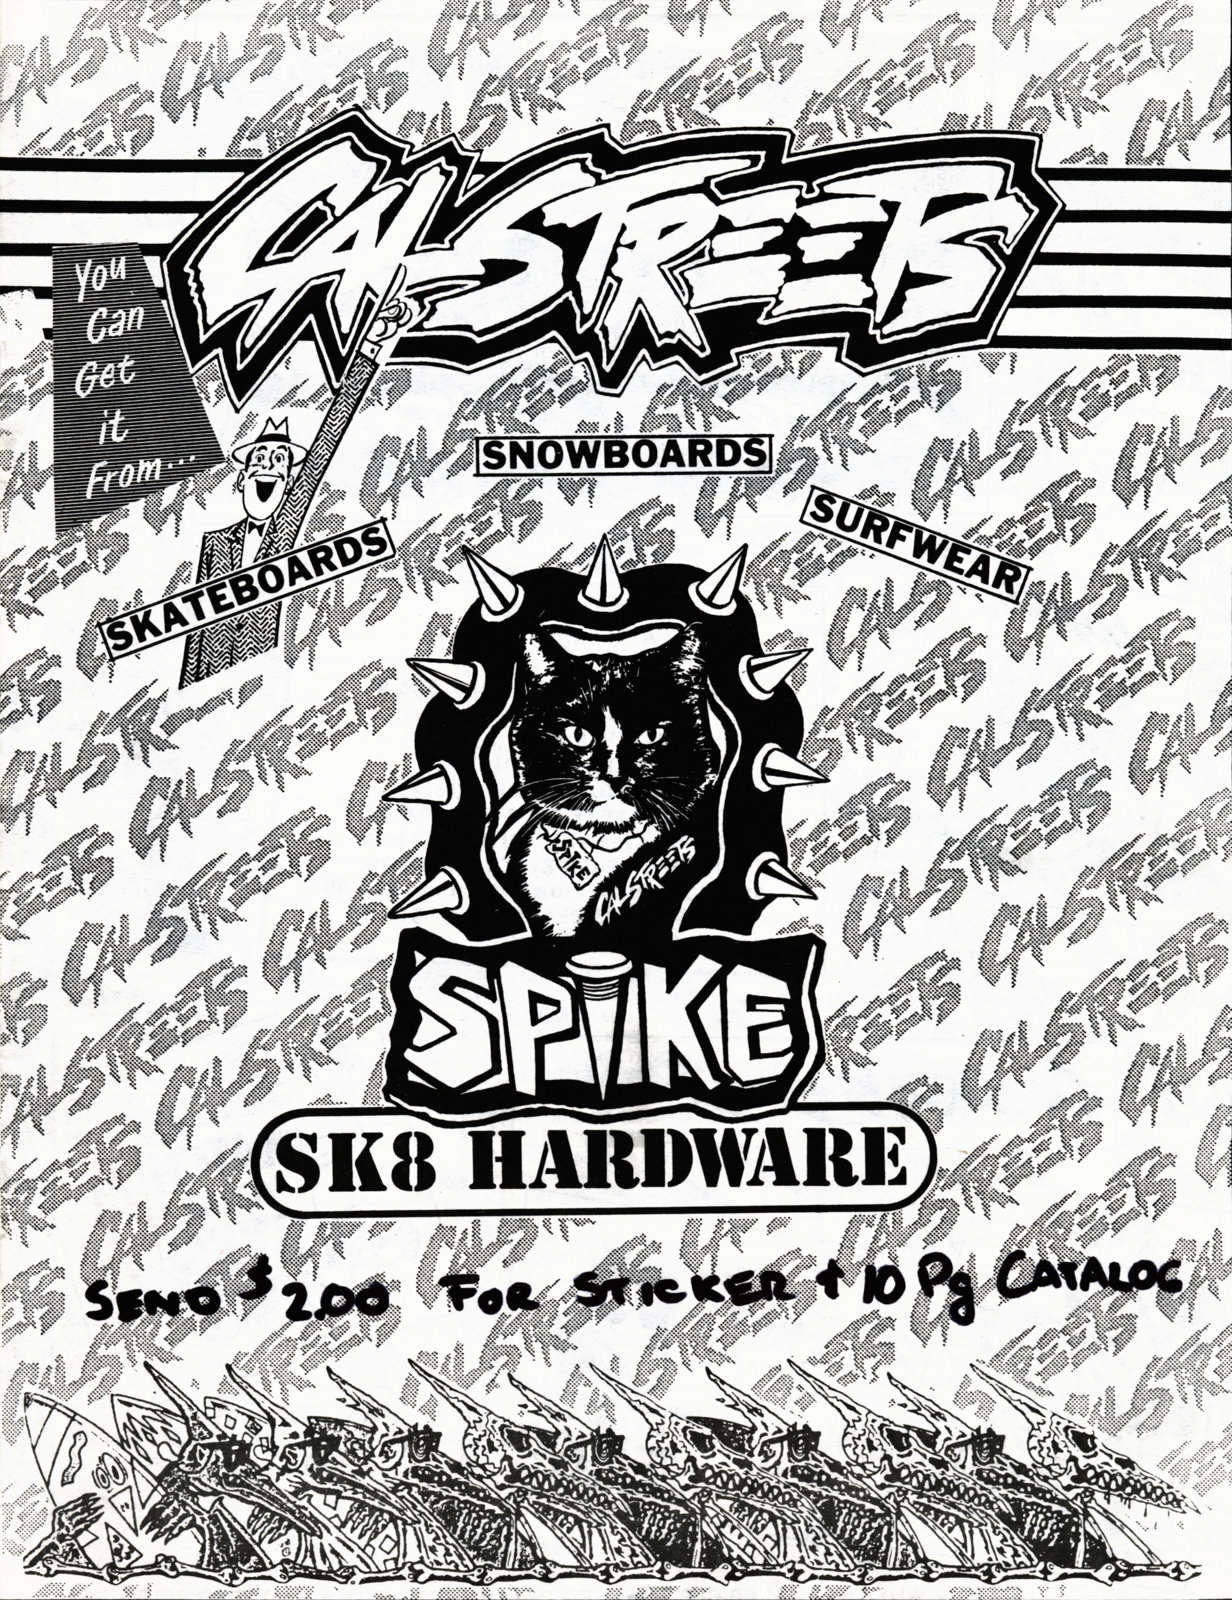 CalStreets 92 Lonsdale the ultimate skateshop of the 89's.